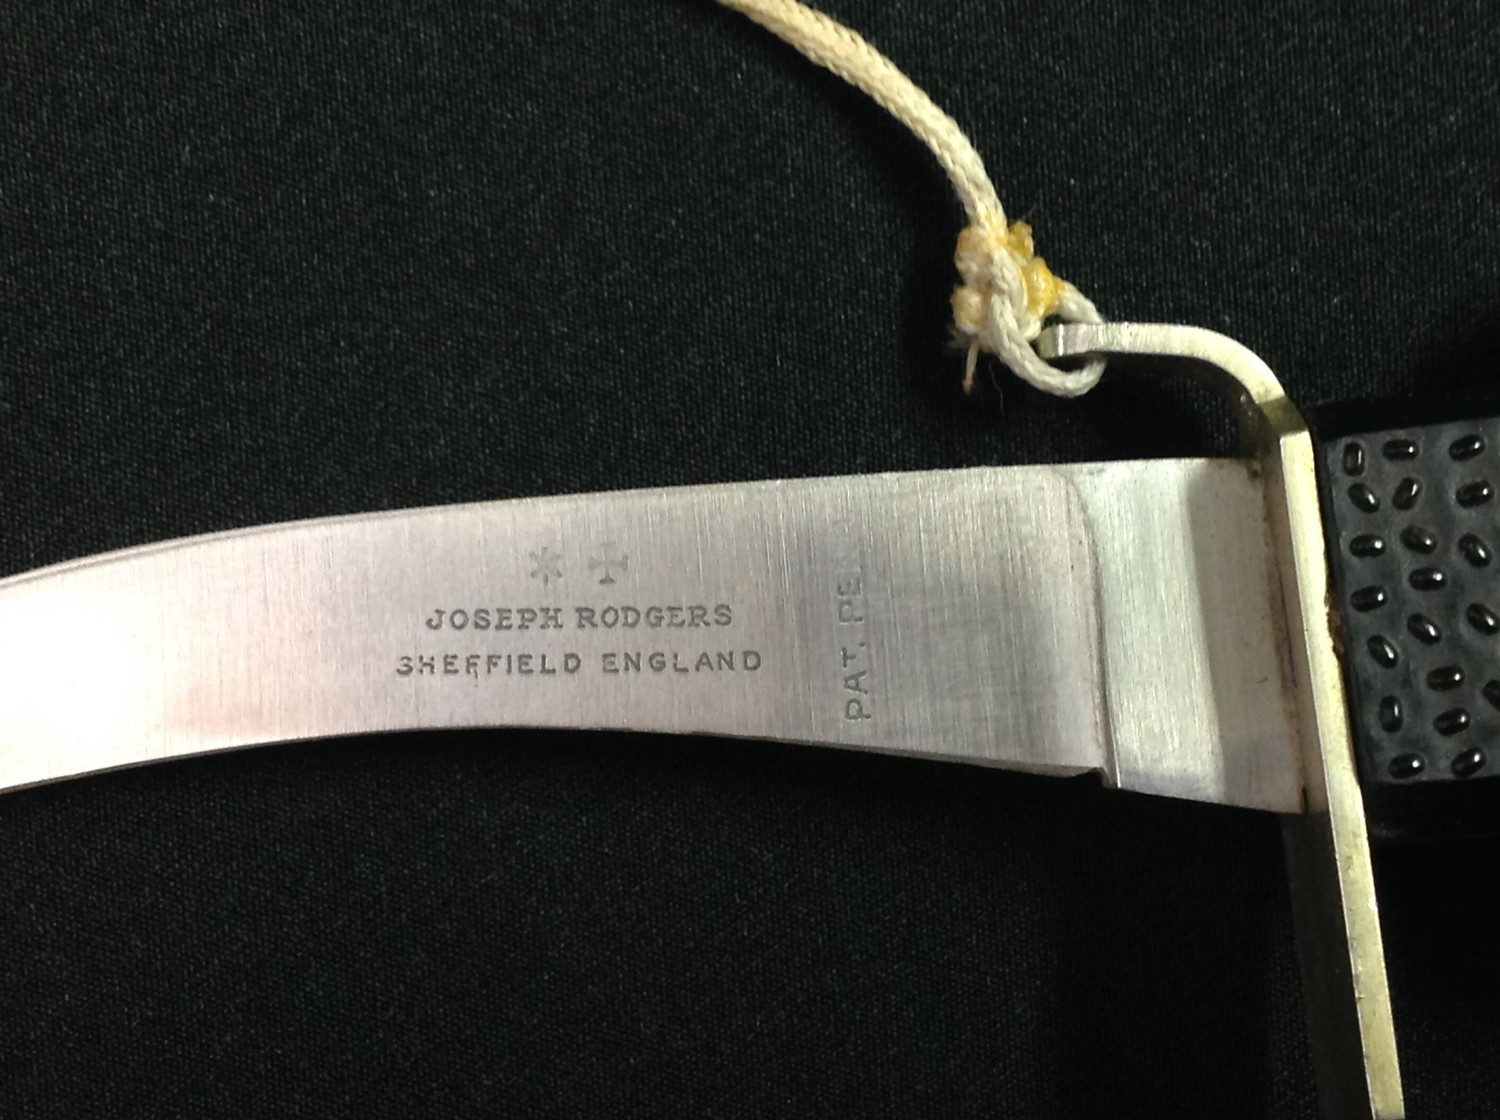 Post War British Joseph Rodgers Aircrew Emergency Knife with curved 100mm long single edged blade - Image 6 of 6